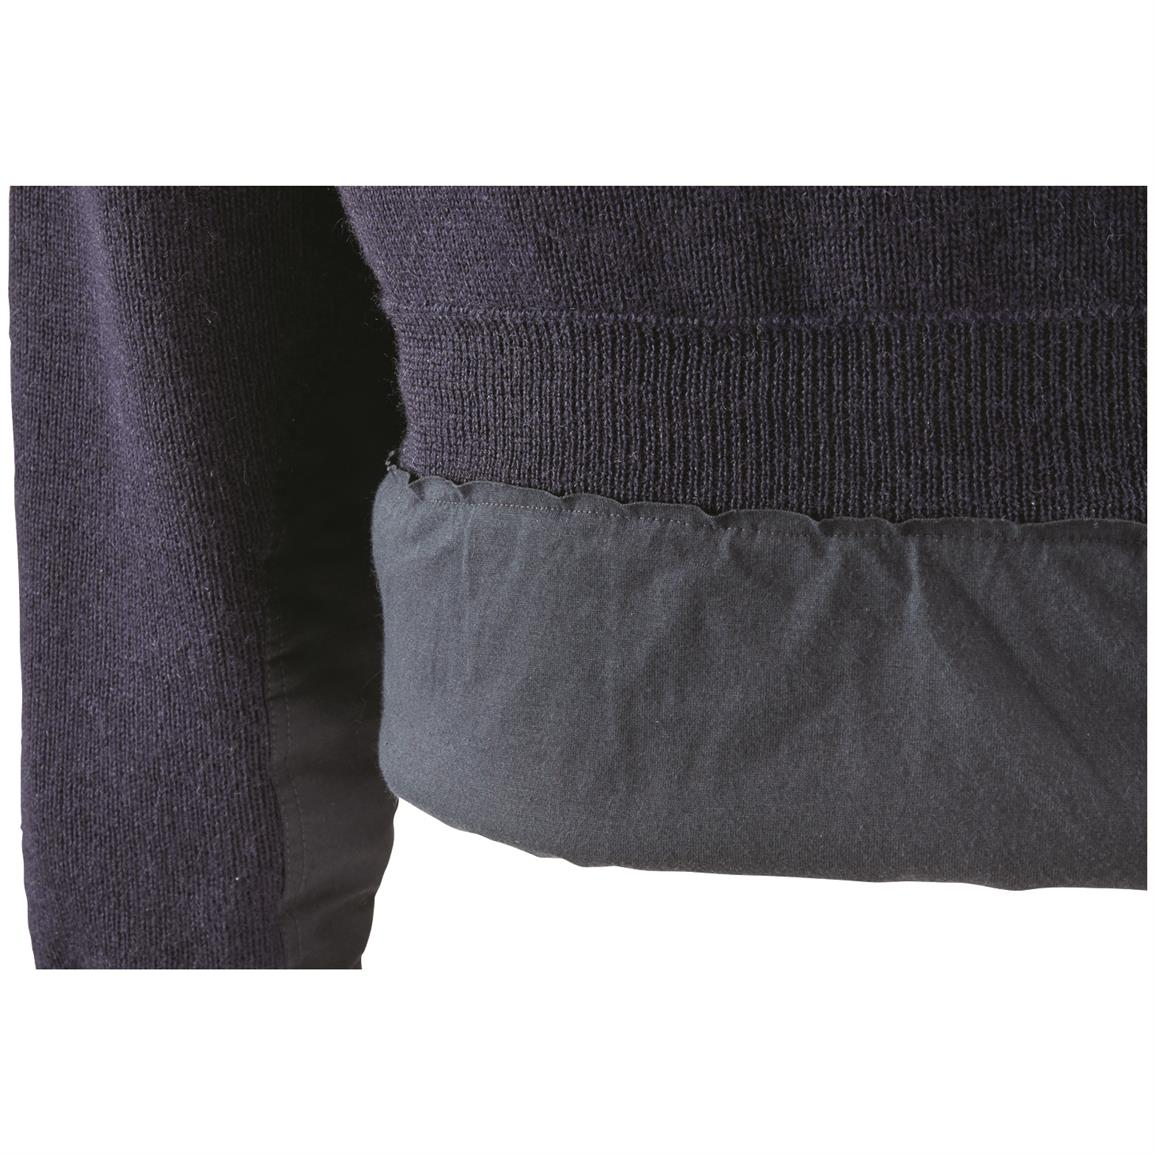 100% wool conserves body heat, damp or dry